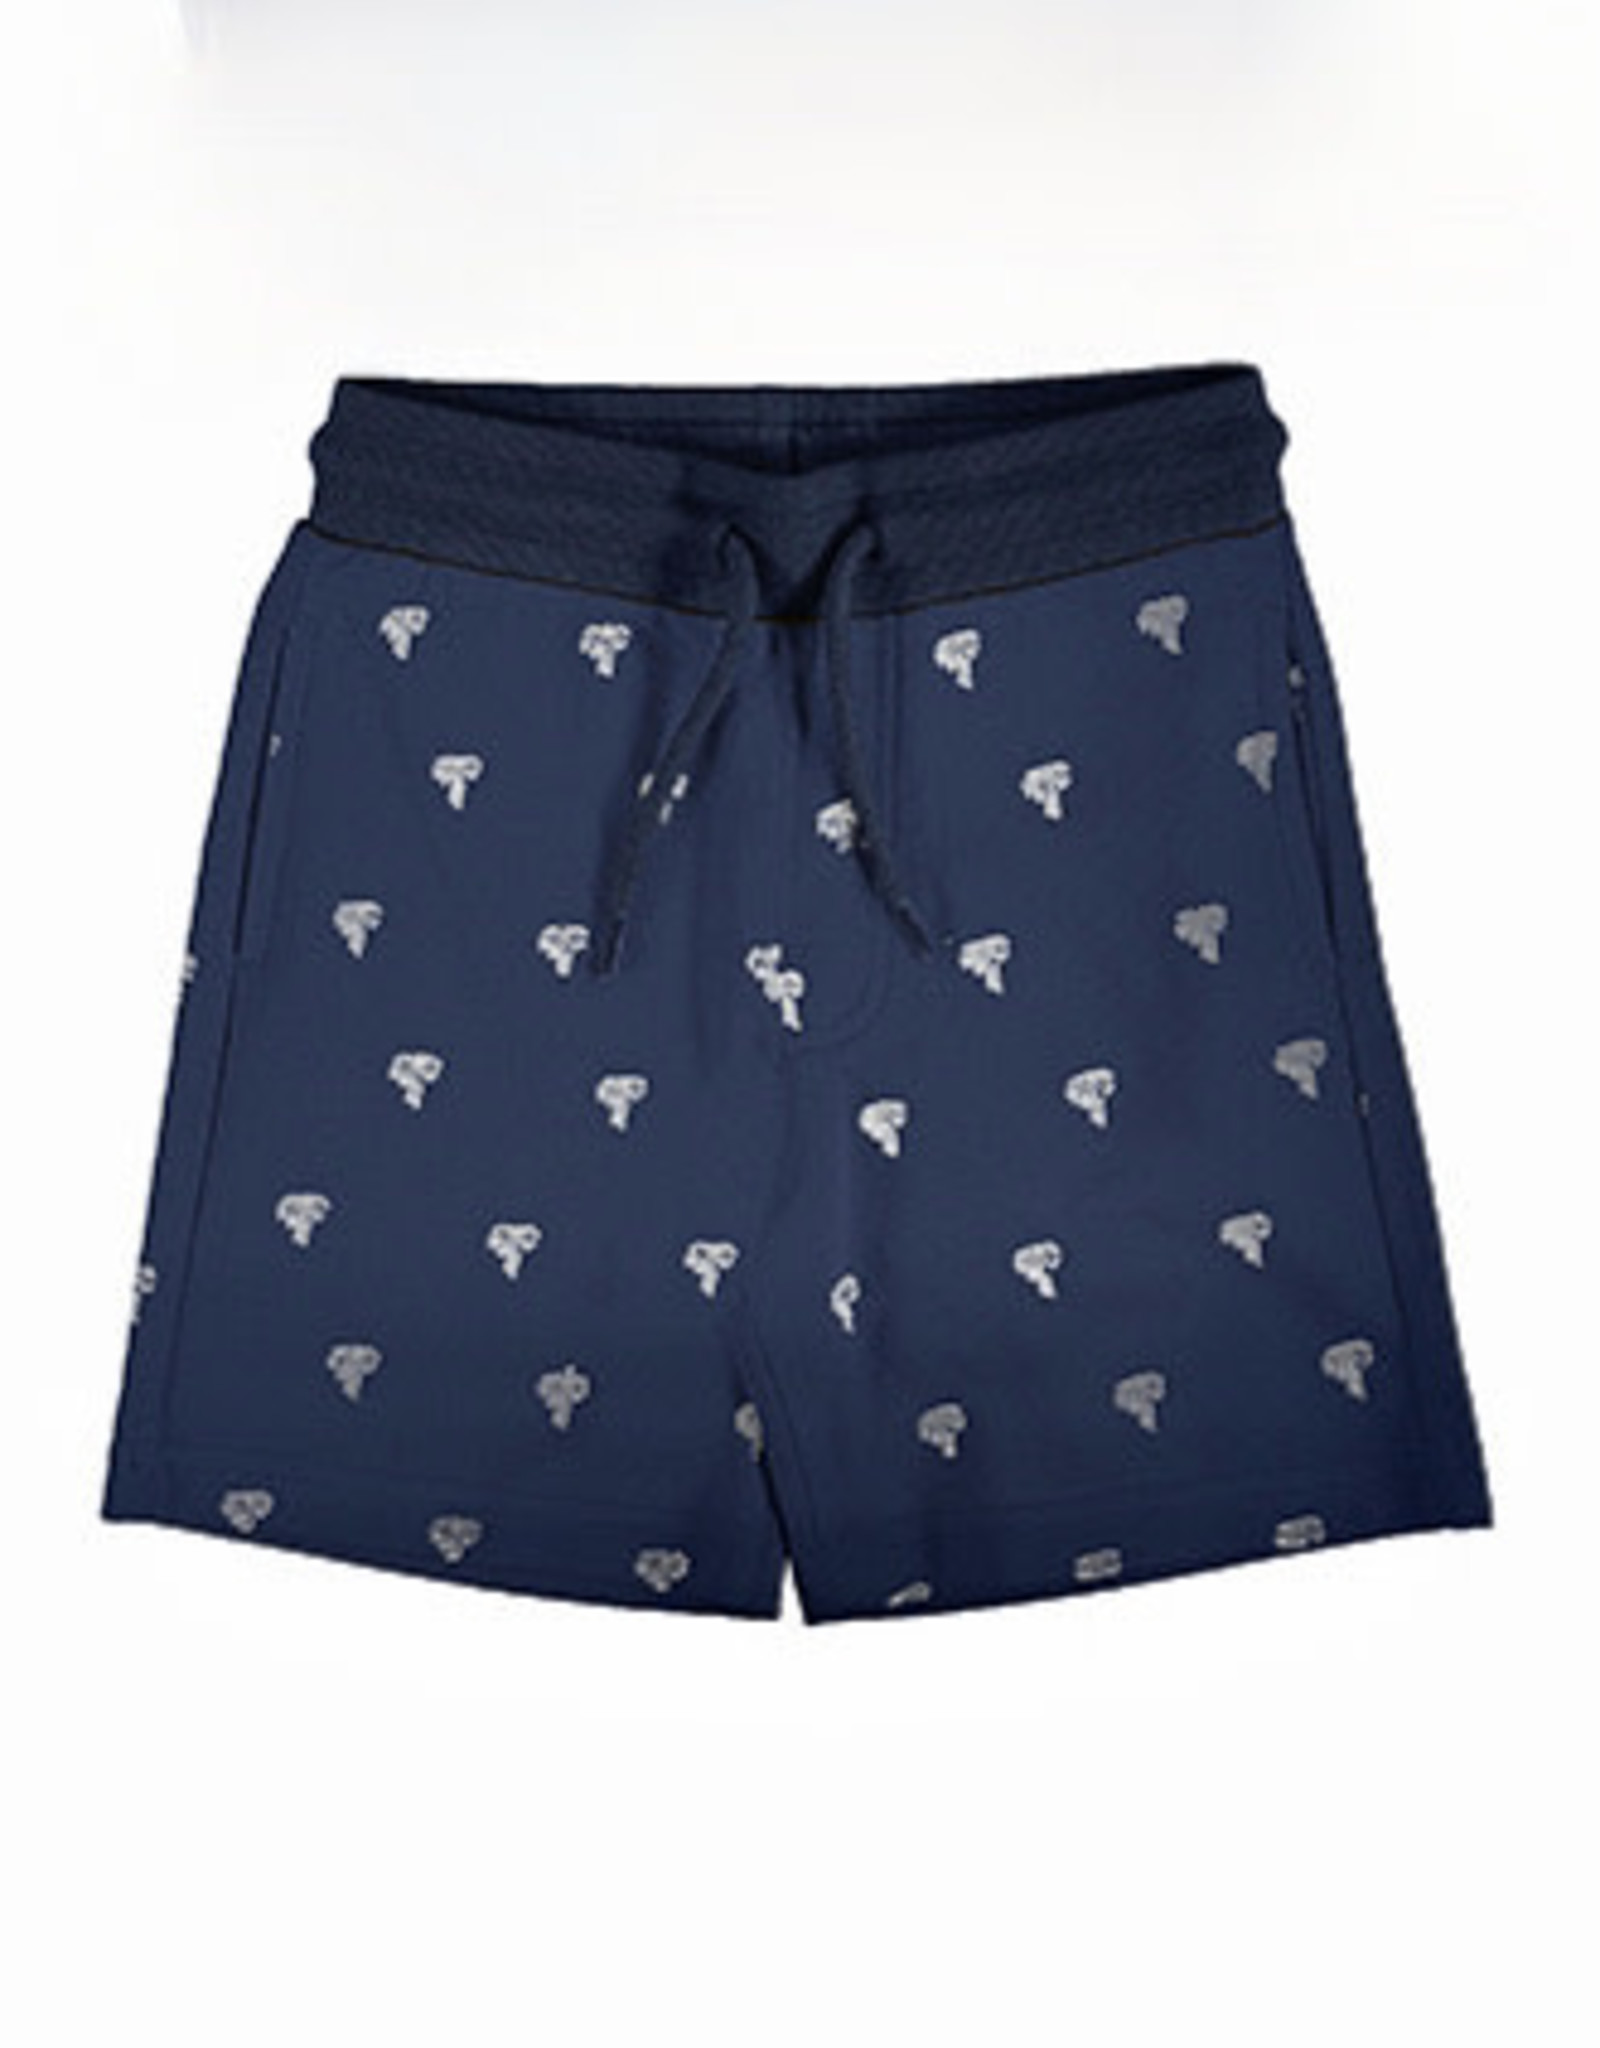 Mayoral Navy Knit Short with Palm trees